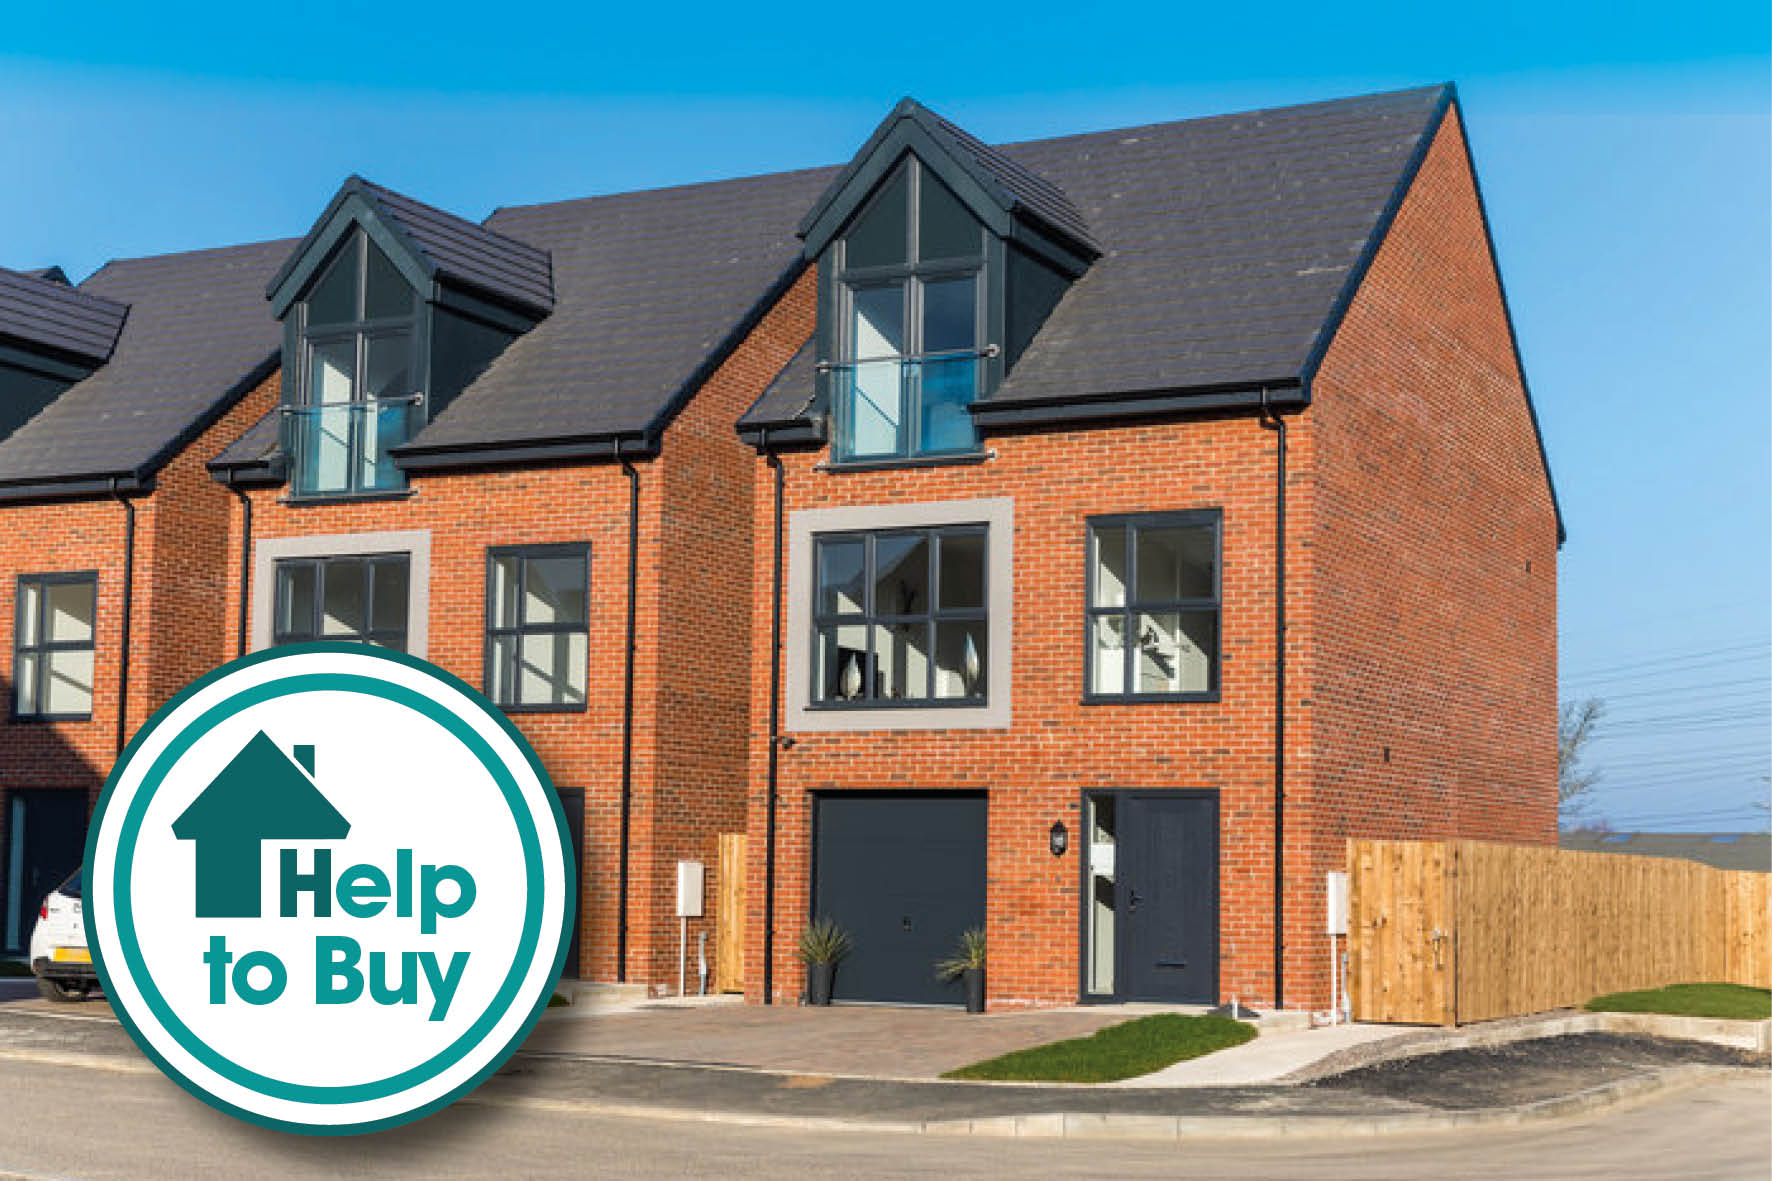 HELP TO BUY AVAILABLE - Government backed schemes where you could buy a new Ascent home with just a 5% deposit:Purchase price of your new home 100% £229,950Deposit 5% £11,497Mortgage 75% £172,463Equity Loan from Government 20% £45,990*Subject to eligibility. Terms and conditions apply. Specific plots only*